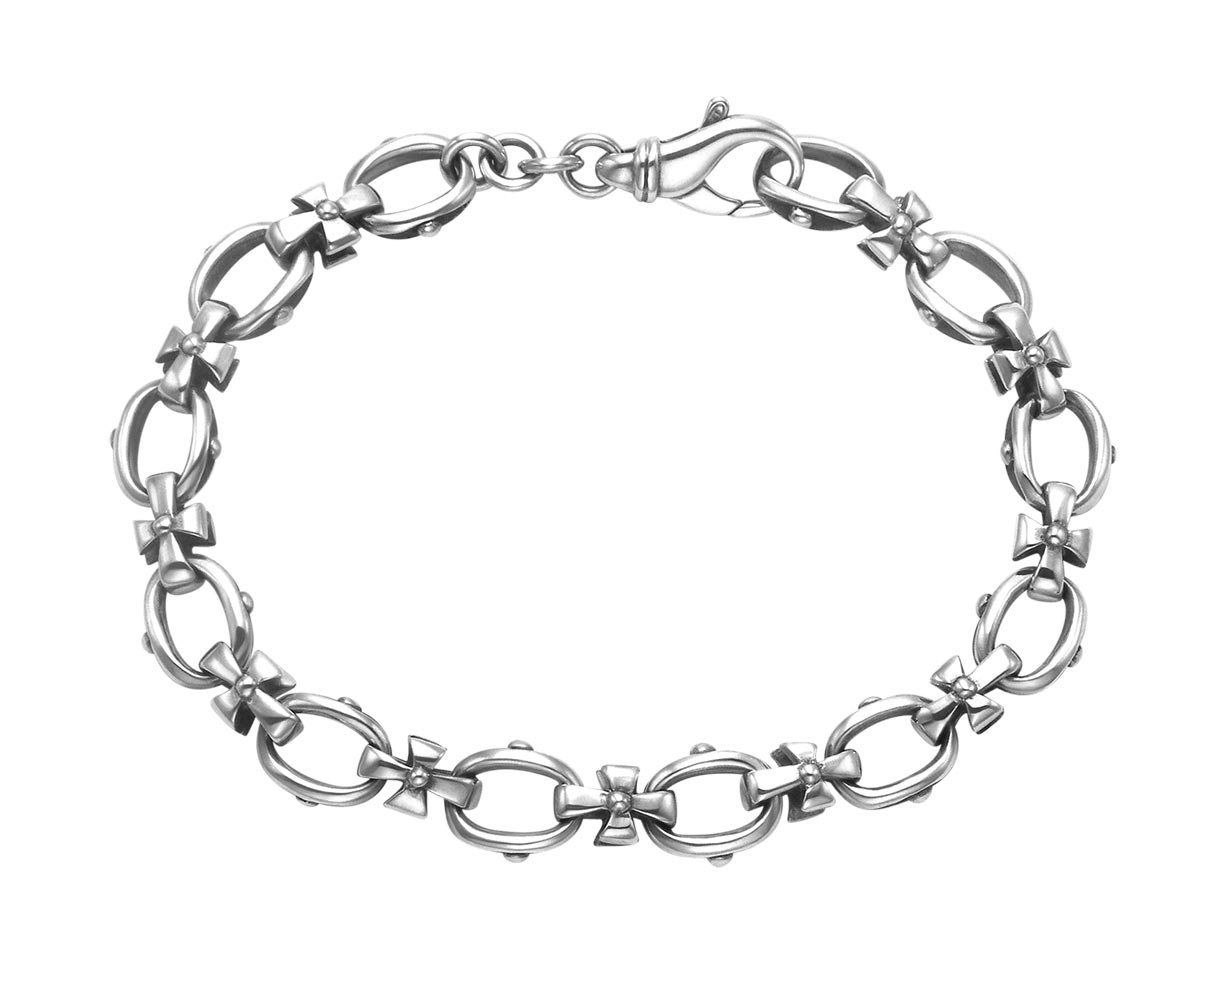 Wild Things Sterling Silver Oval and Cross Links Bracelet (7)